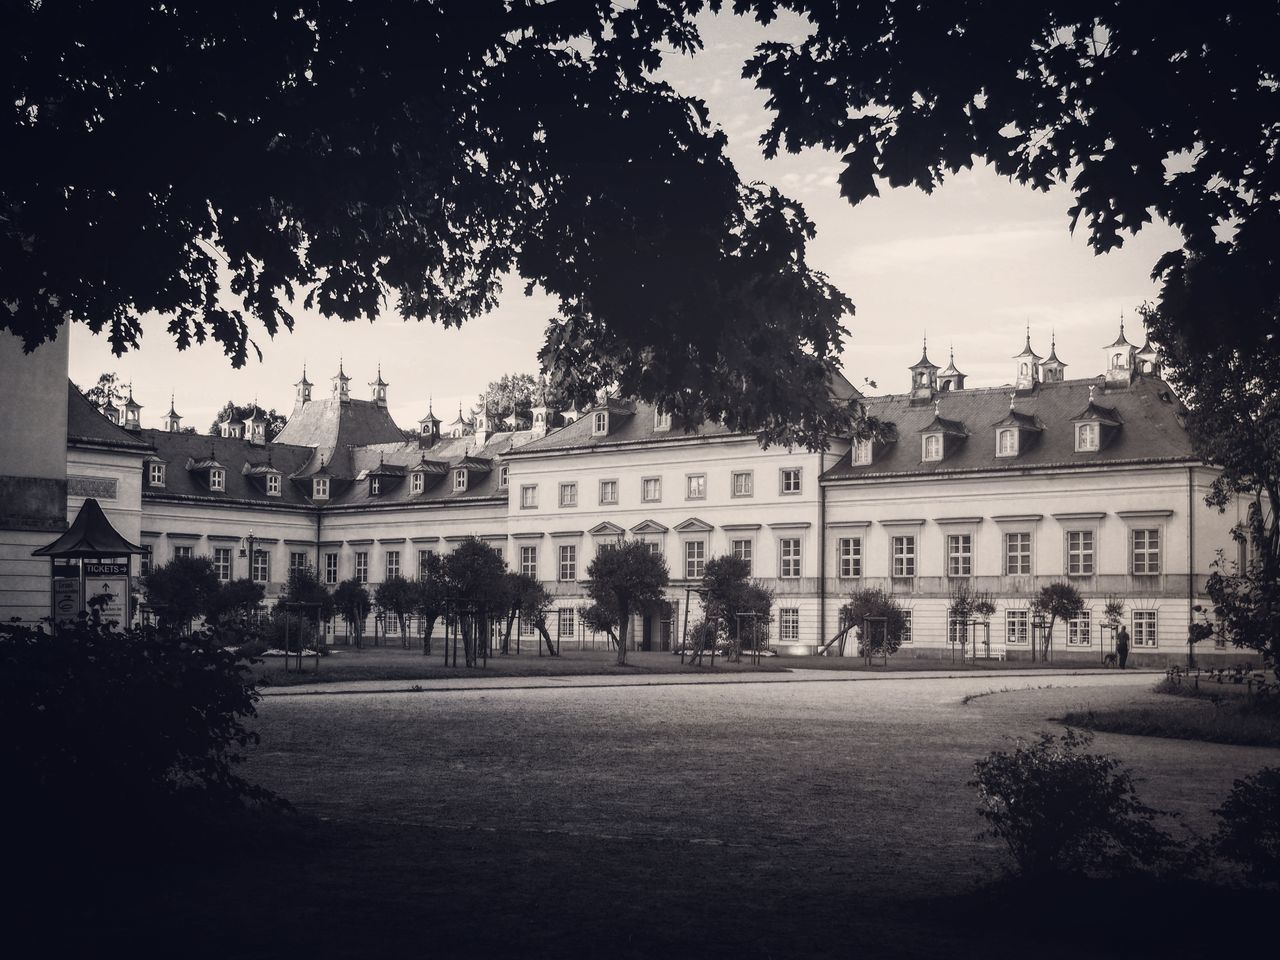 Schloss Pillnitz (A beautiful castle in eastern Saxony) - MAinLoveWithCreation ADMIRING Man Made Castle Man Made Beauty Beautiful Castles Beautiful Castle Beautiful Castles In Europe Vintage Monochrome Black And White Black & White Bnw Bnw_collection Bnw_captures Bnw Photography Architecture Architecture_collection Building Buildings Hidden Behind Trees How I Feel At Times How I See Things How I See The World